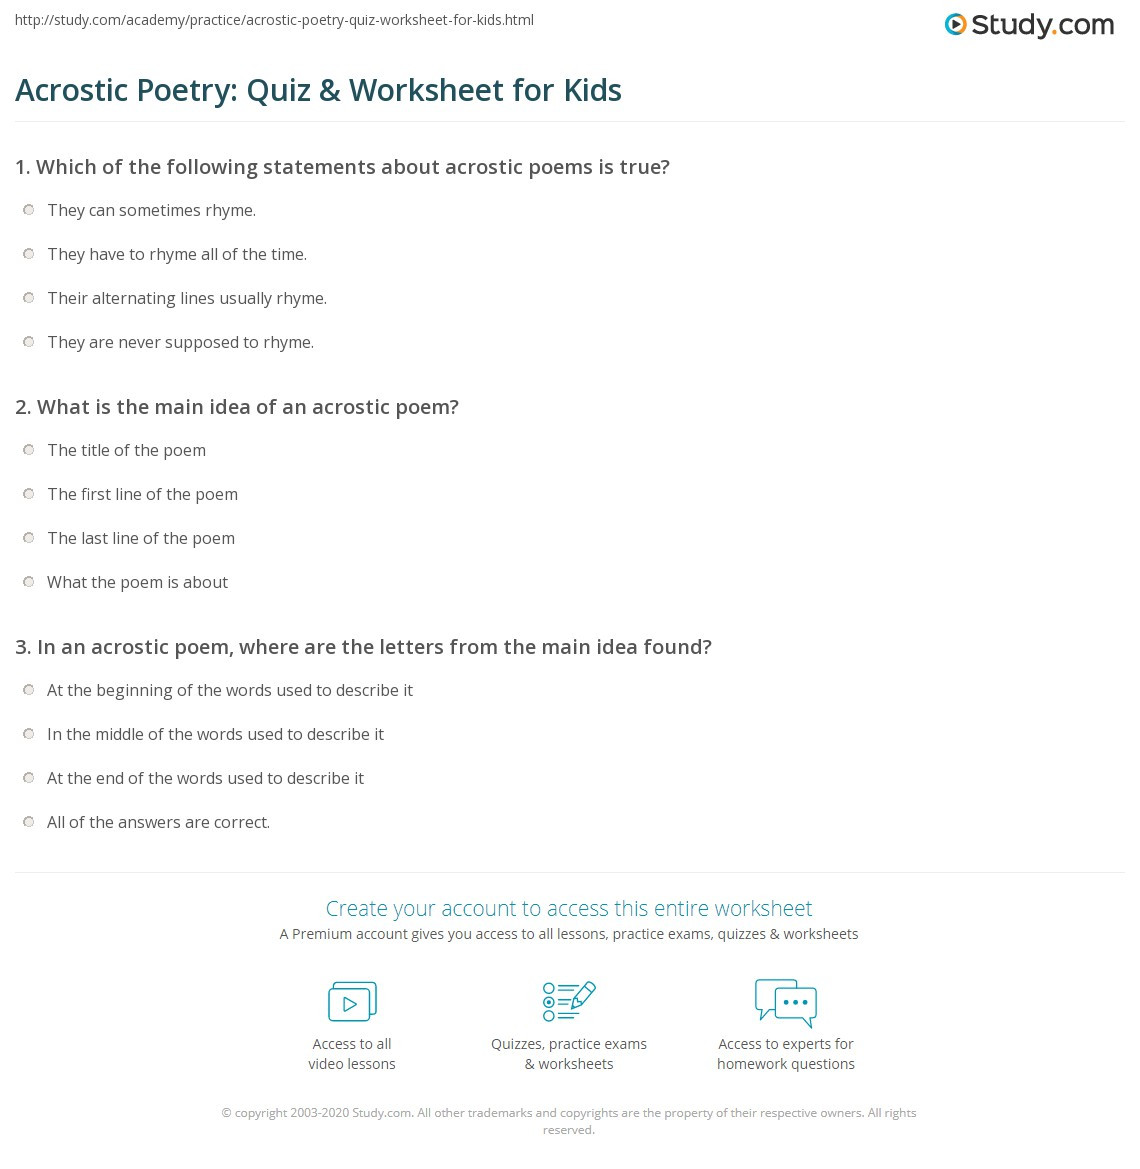 Main Idea Worksheets High School Acrostic Poetry Quiz & Worksheet for Kids